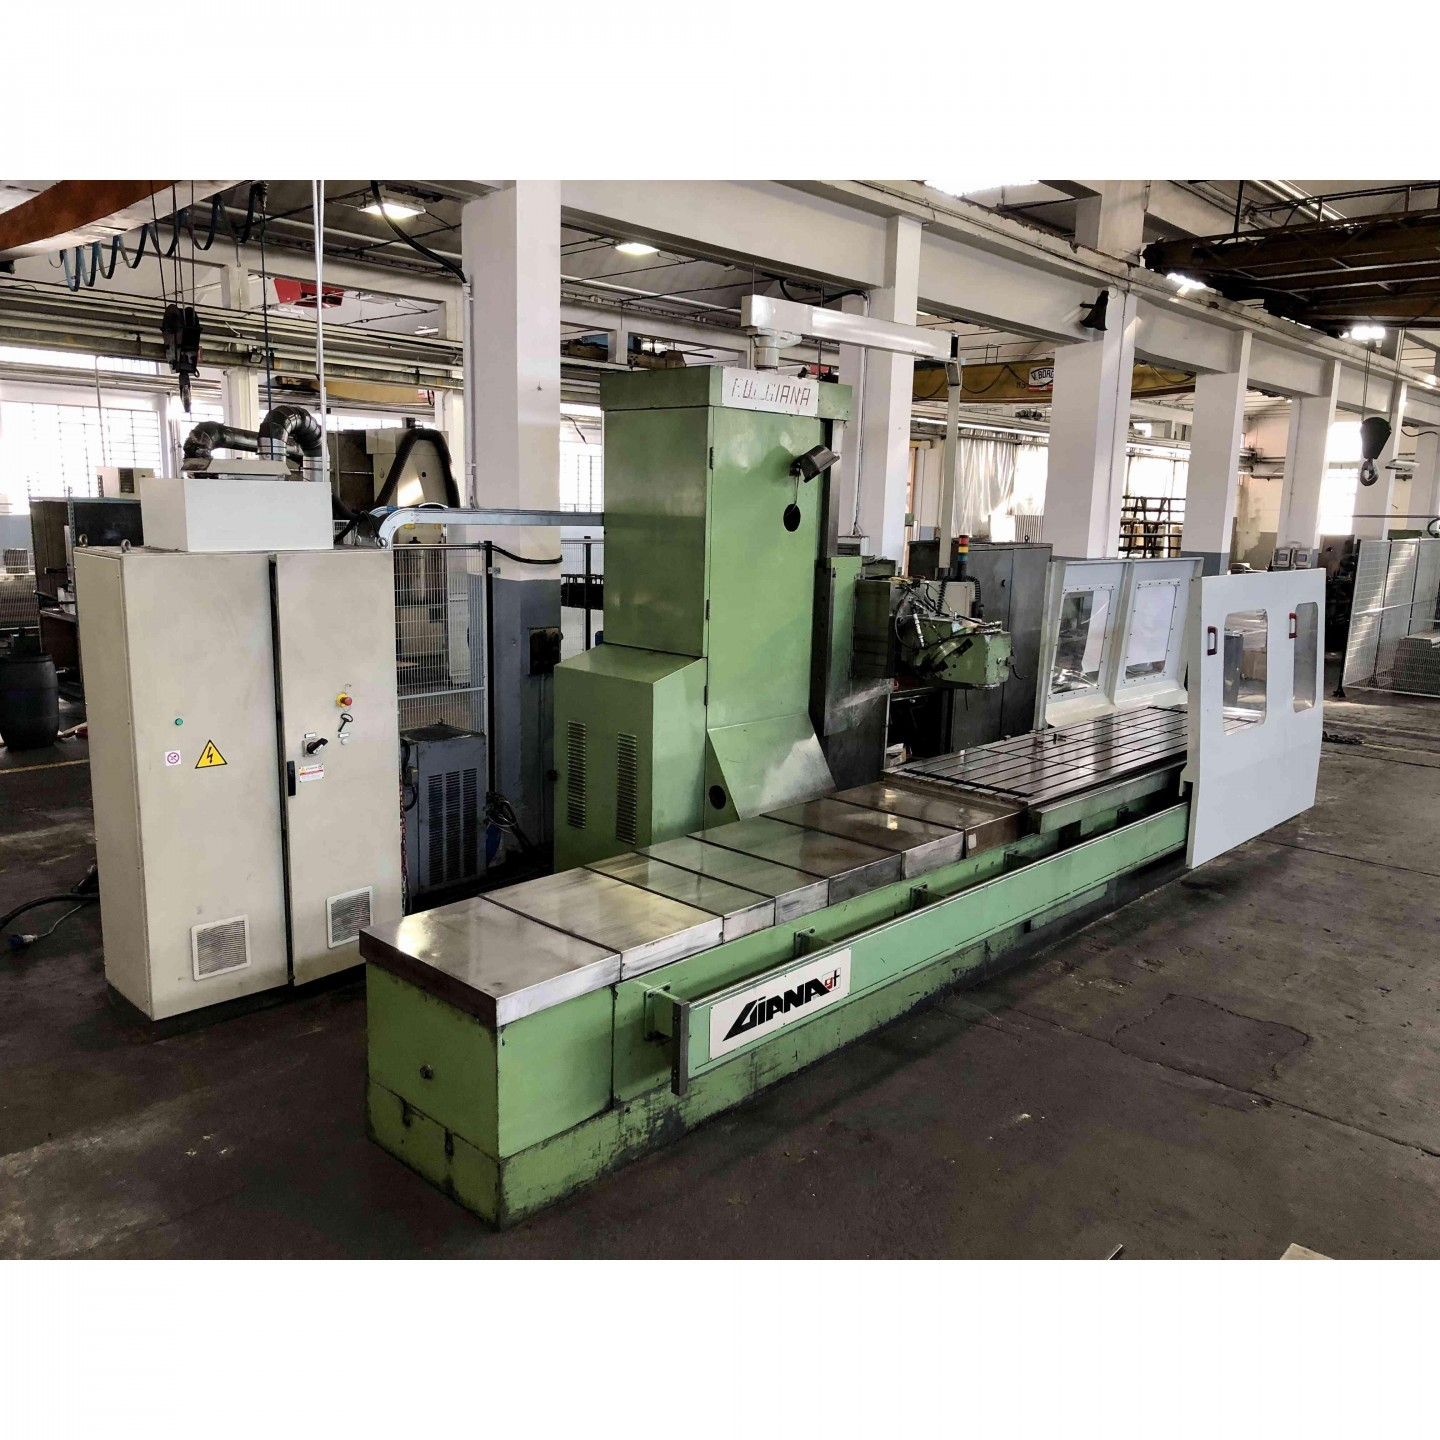 GIANA GFR 3000 - BED TYPE MILLING MACHINES